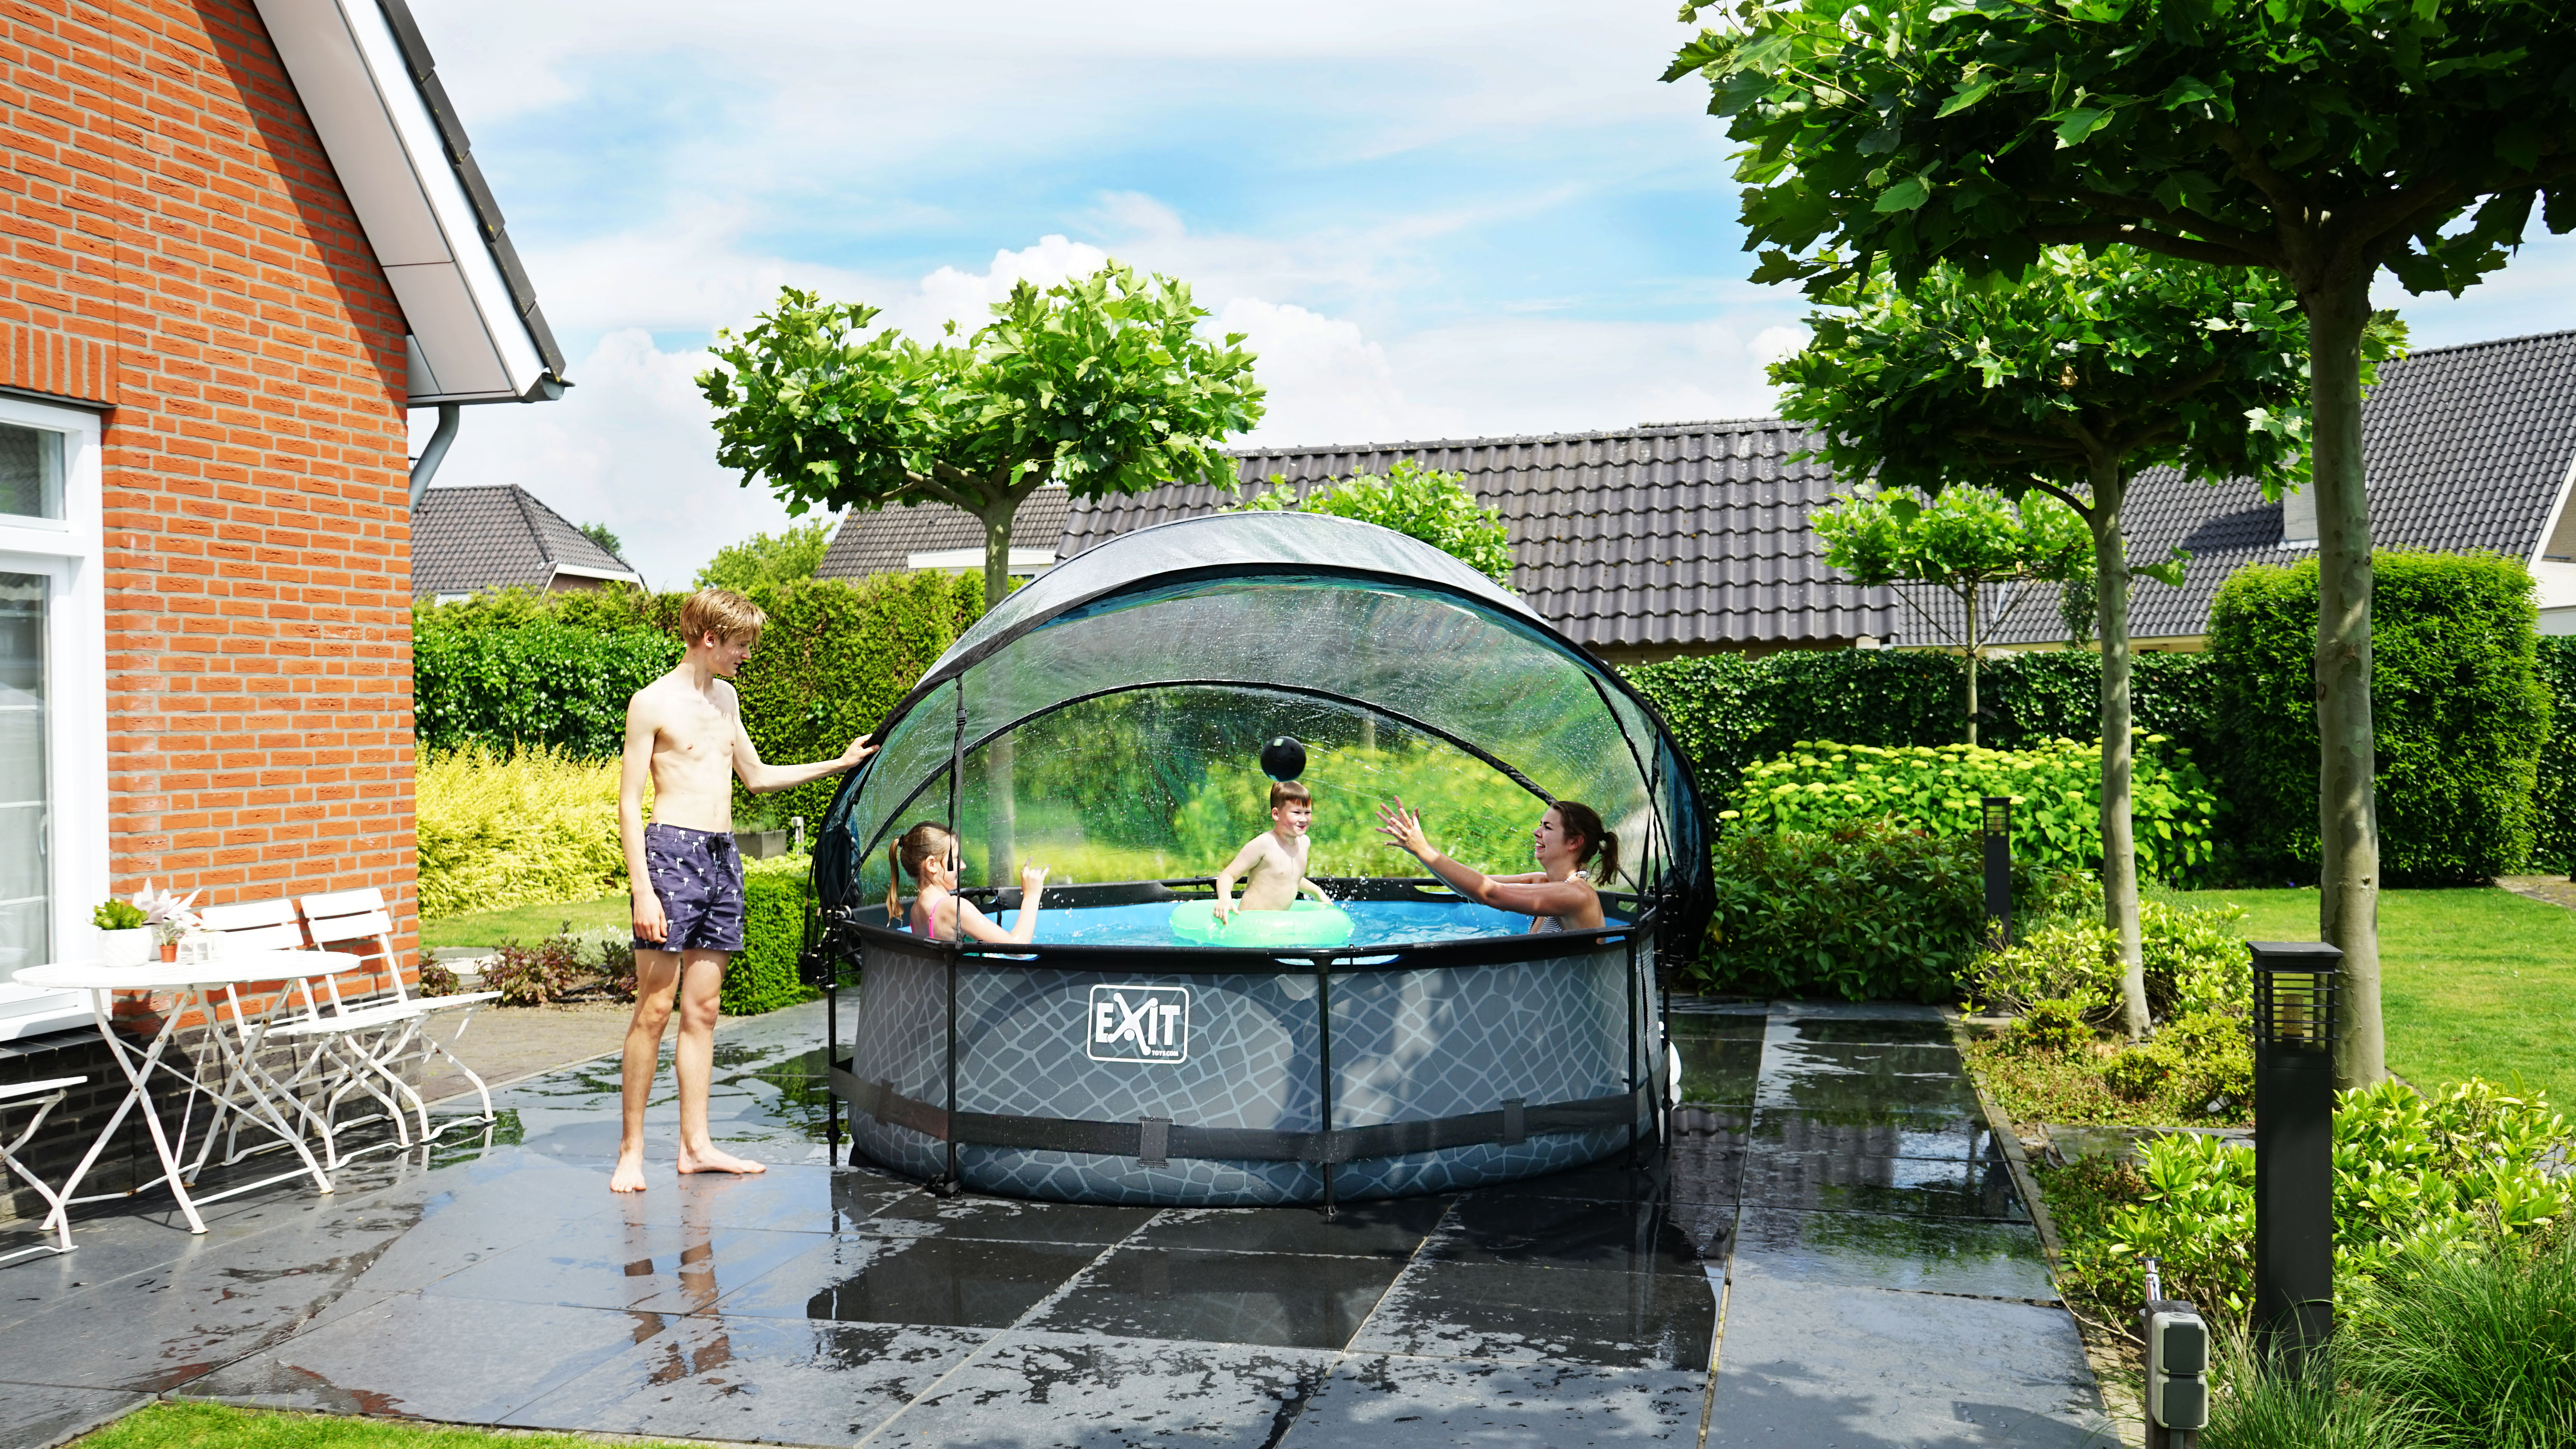 Pool and dome with kids